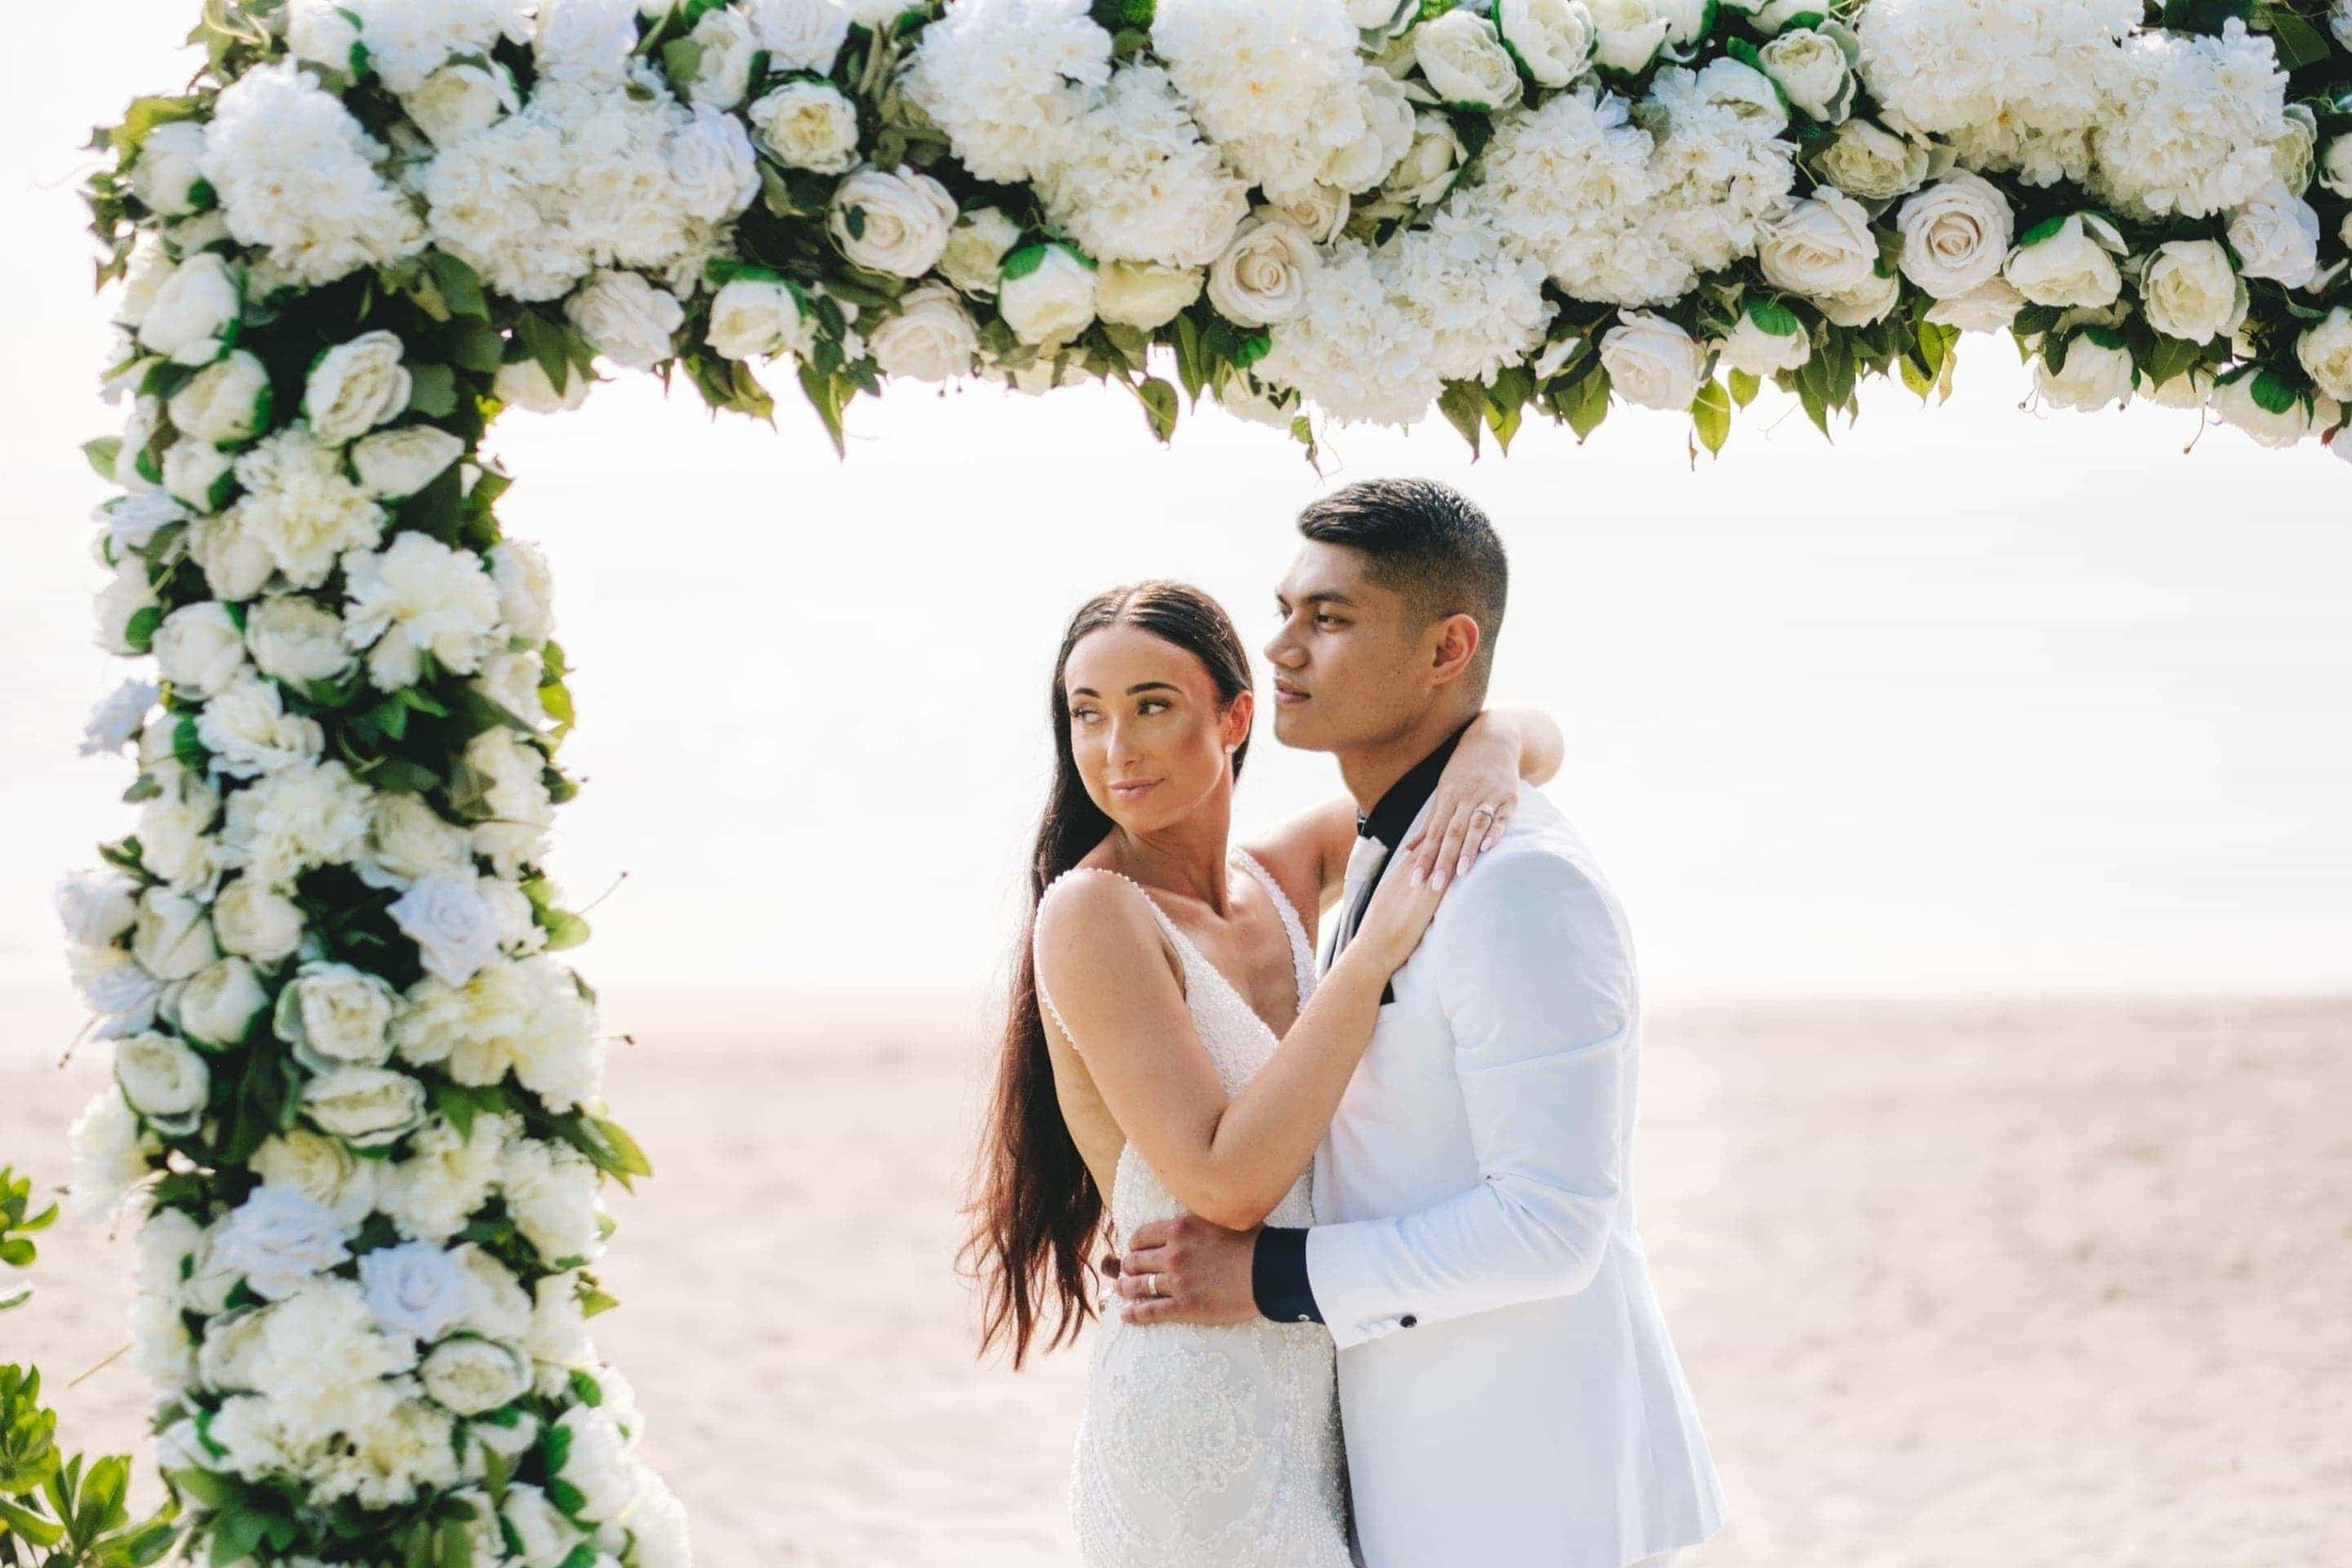 The newlyweds embrace under their white tropical wedding arch